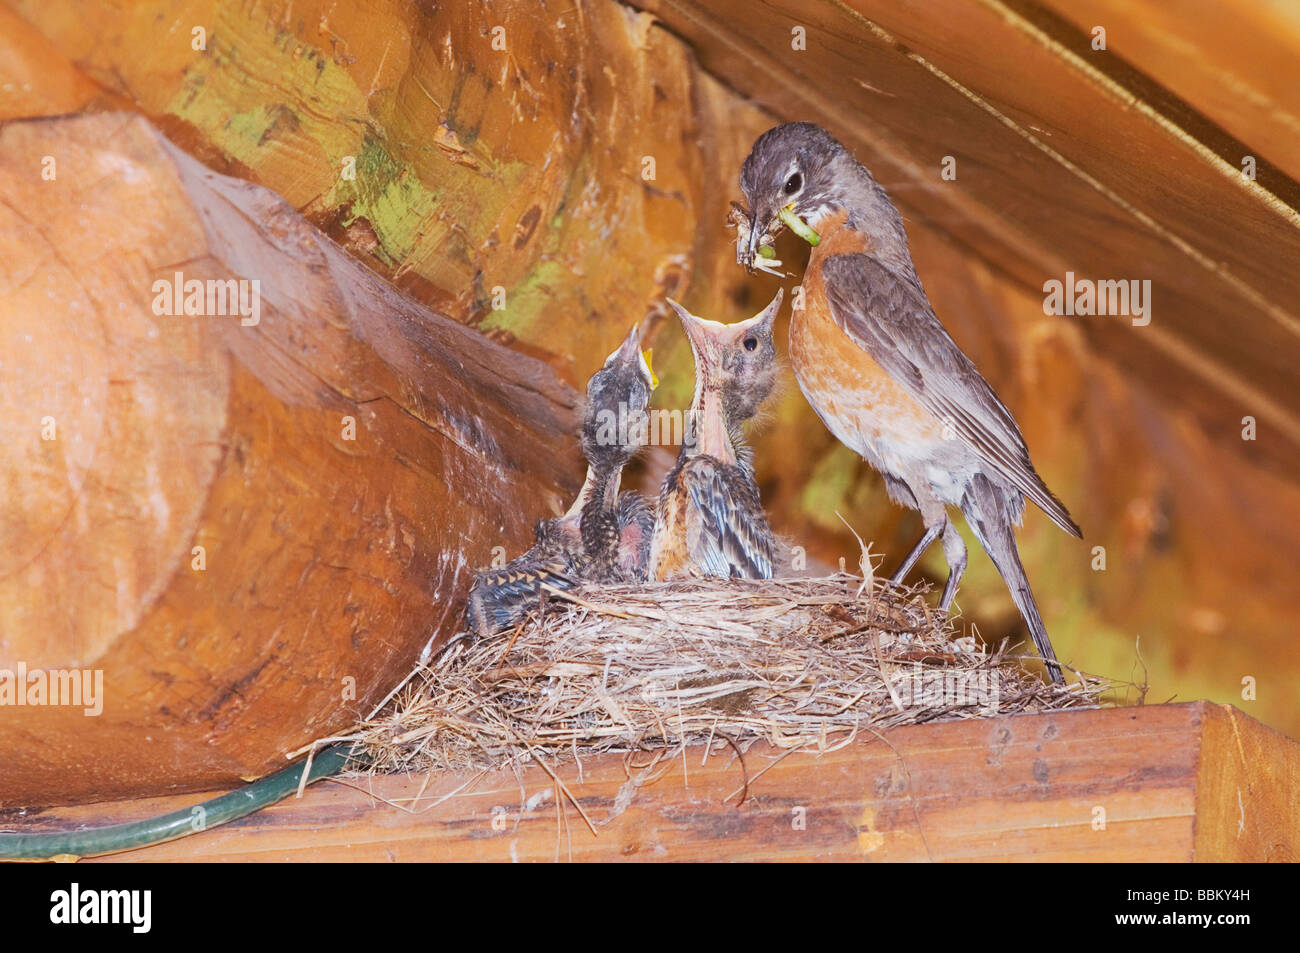 American Robin Turdus migratorius female with young on nest at Log Cabin Glacier National Park Montana USA July - Stock Image